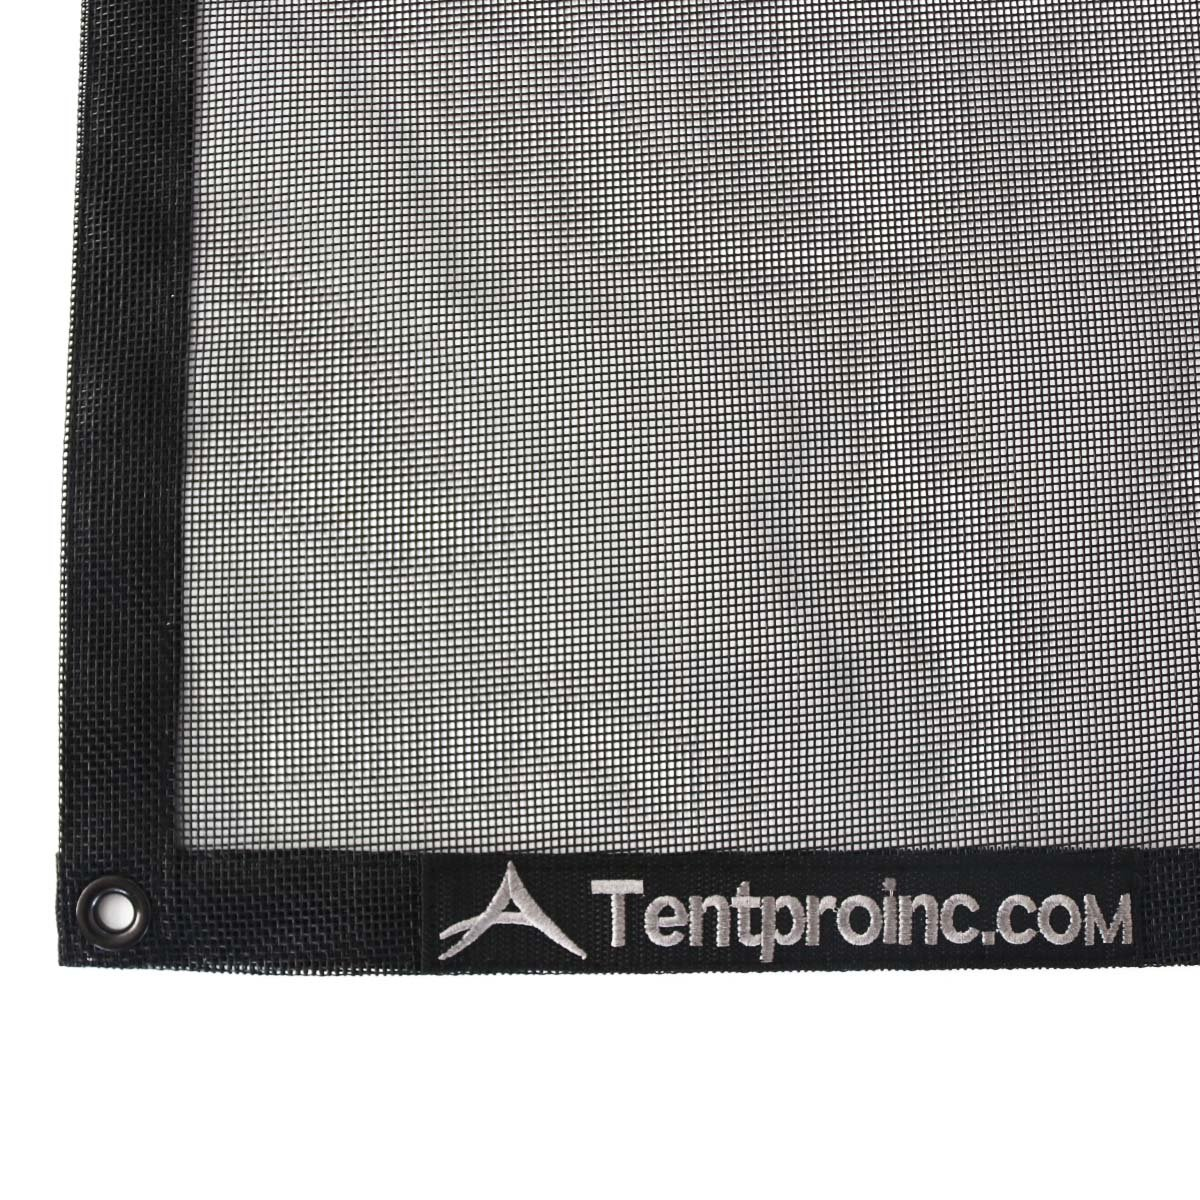 3 Years Limited Warranty Black No Rust Thicker Brass Grommets Truck Mesh Tarp 10/'x18/' Tentproinc Heavy Duty Cover Top Quality Reinforced Double Needle Stitch Webbing Ripping and Tearing Stop